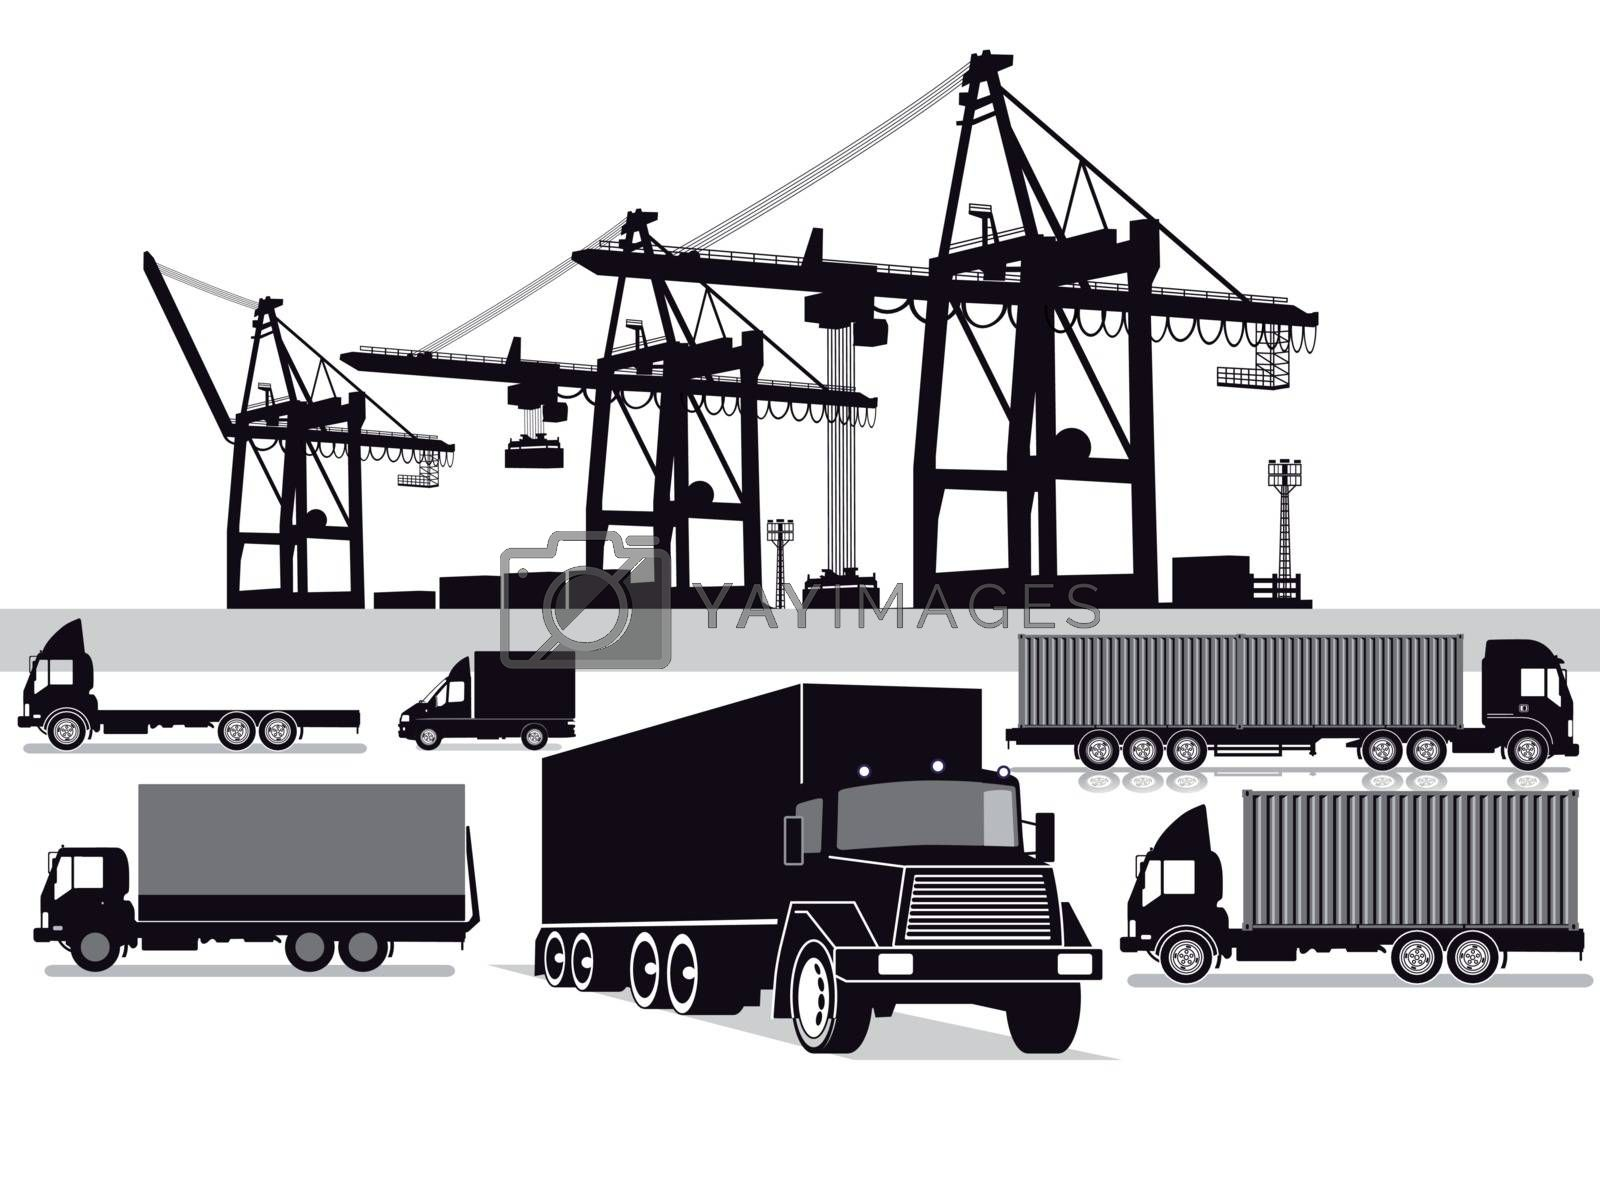 Freight, container transport, transport forwarding